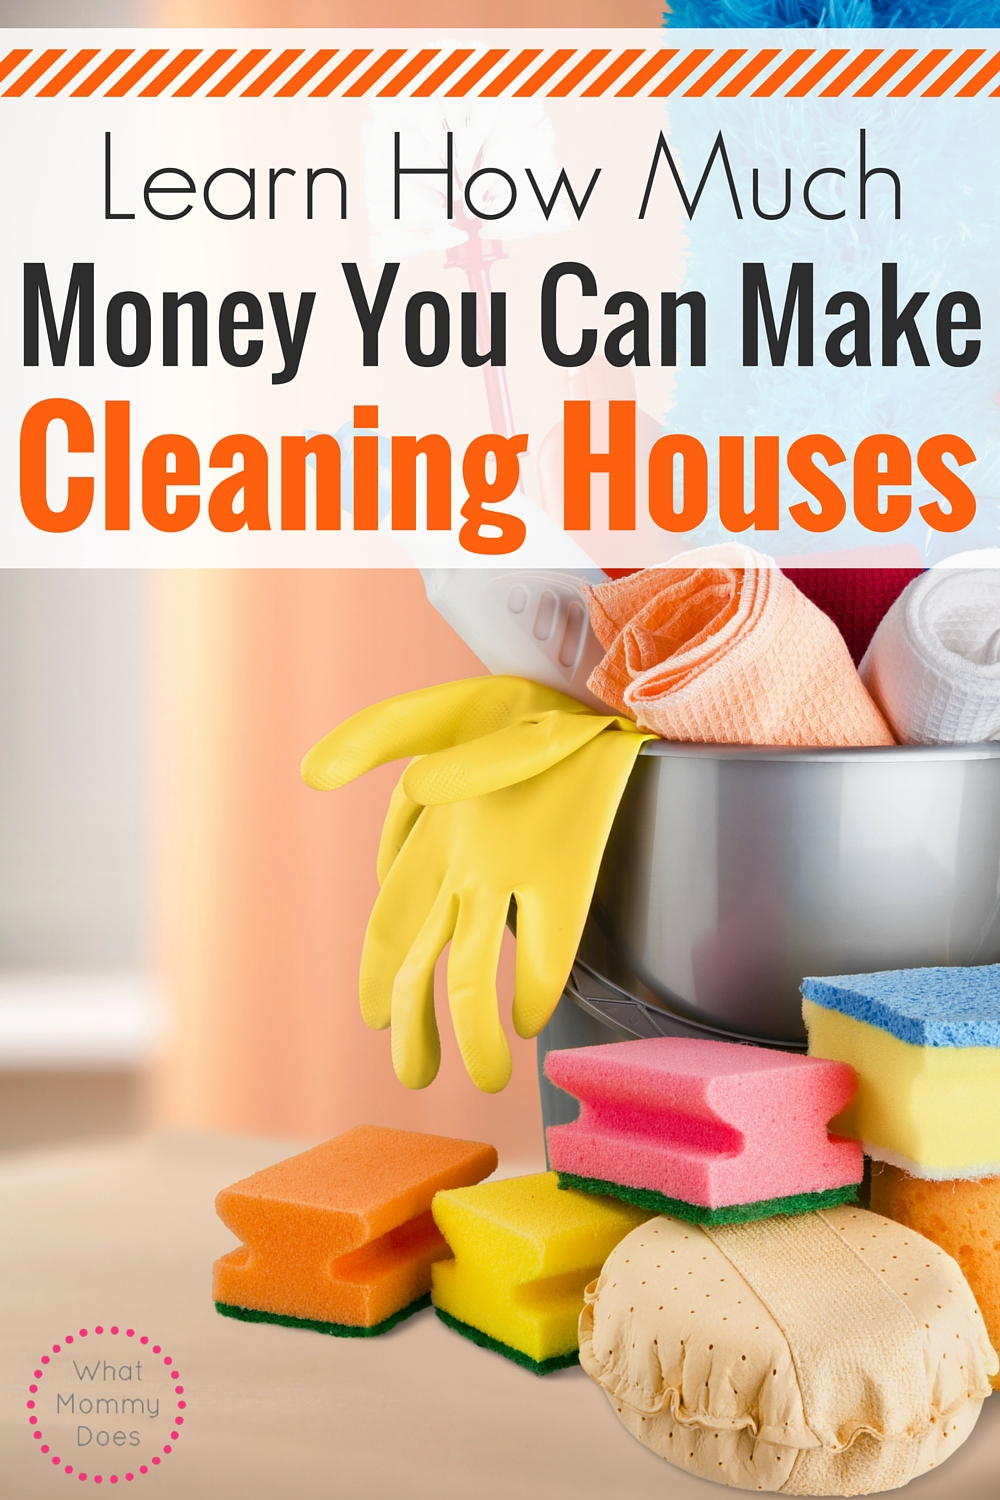 Making Money Cleaning Houses Earnings Guide What Mommy Does In 2020 Clean House Money Making Extra Cash